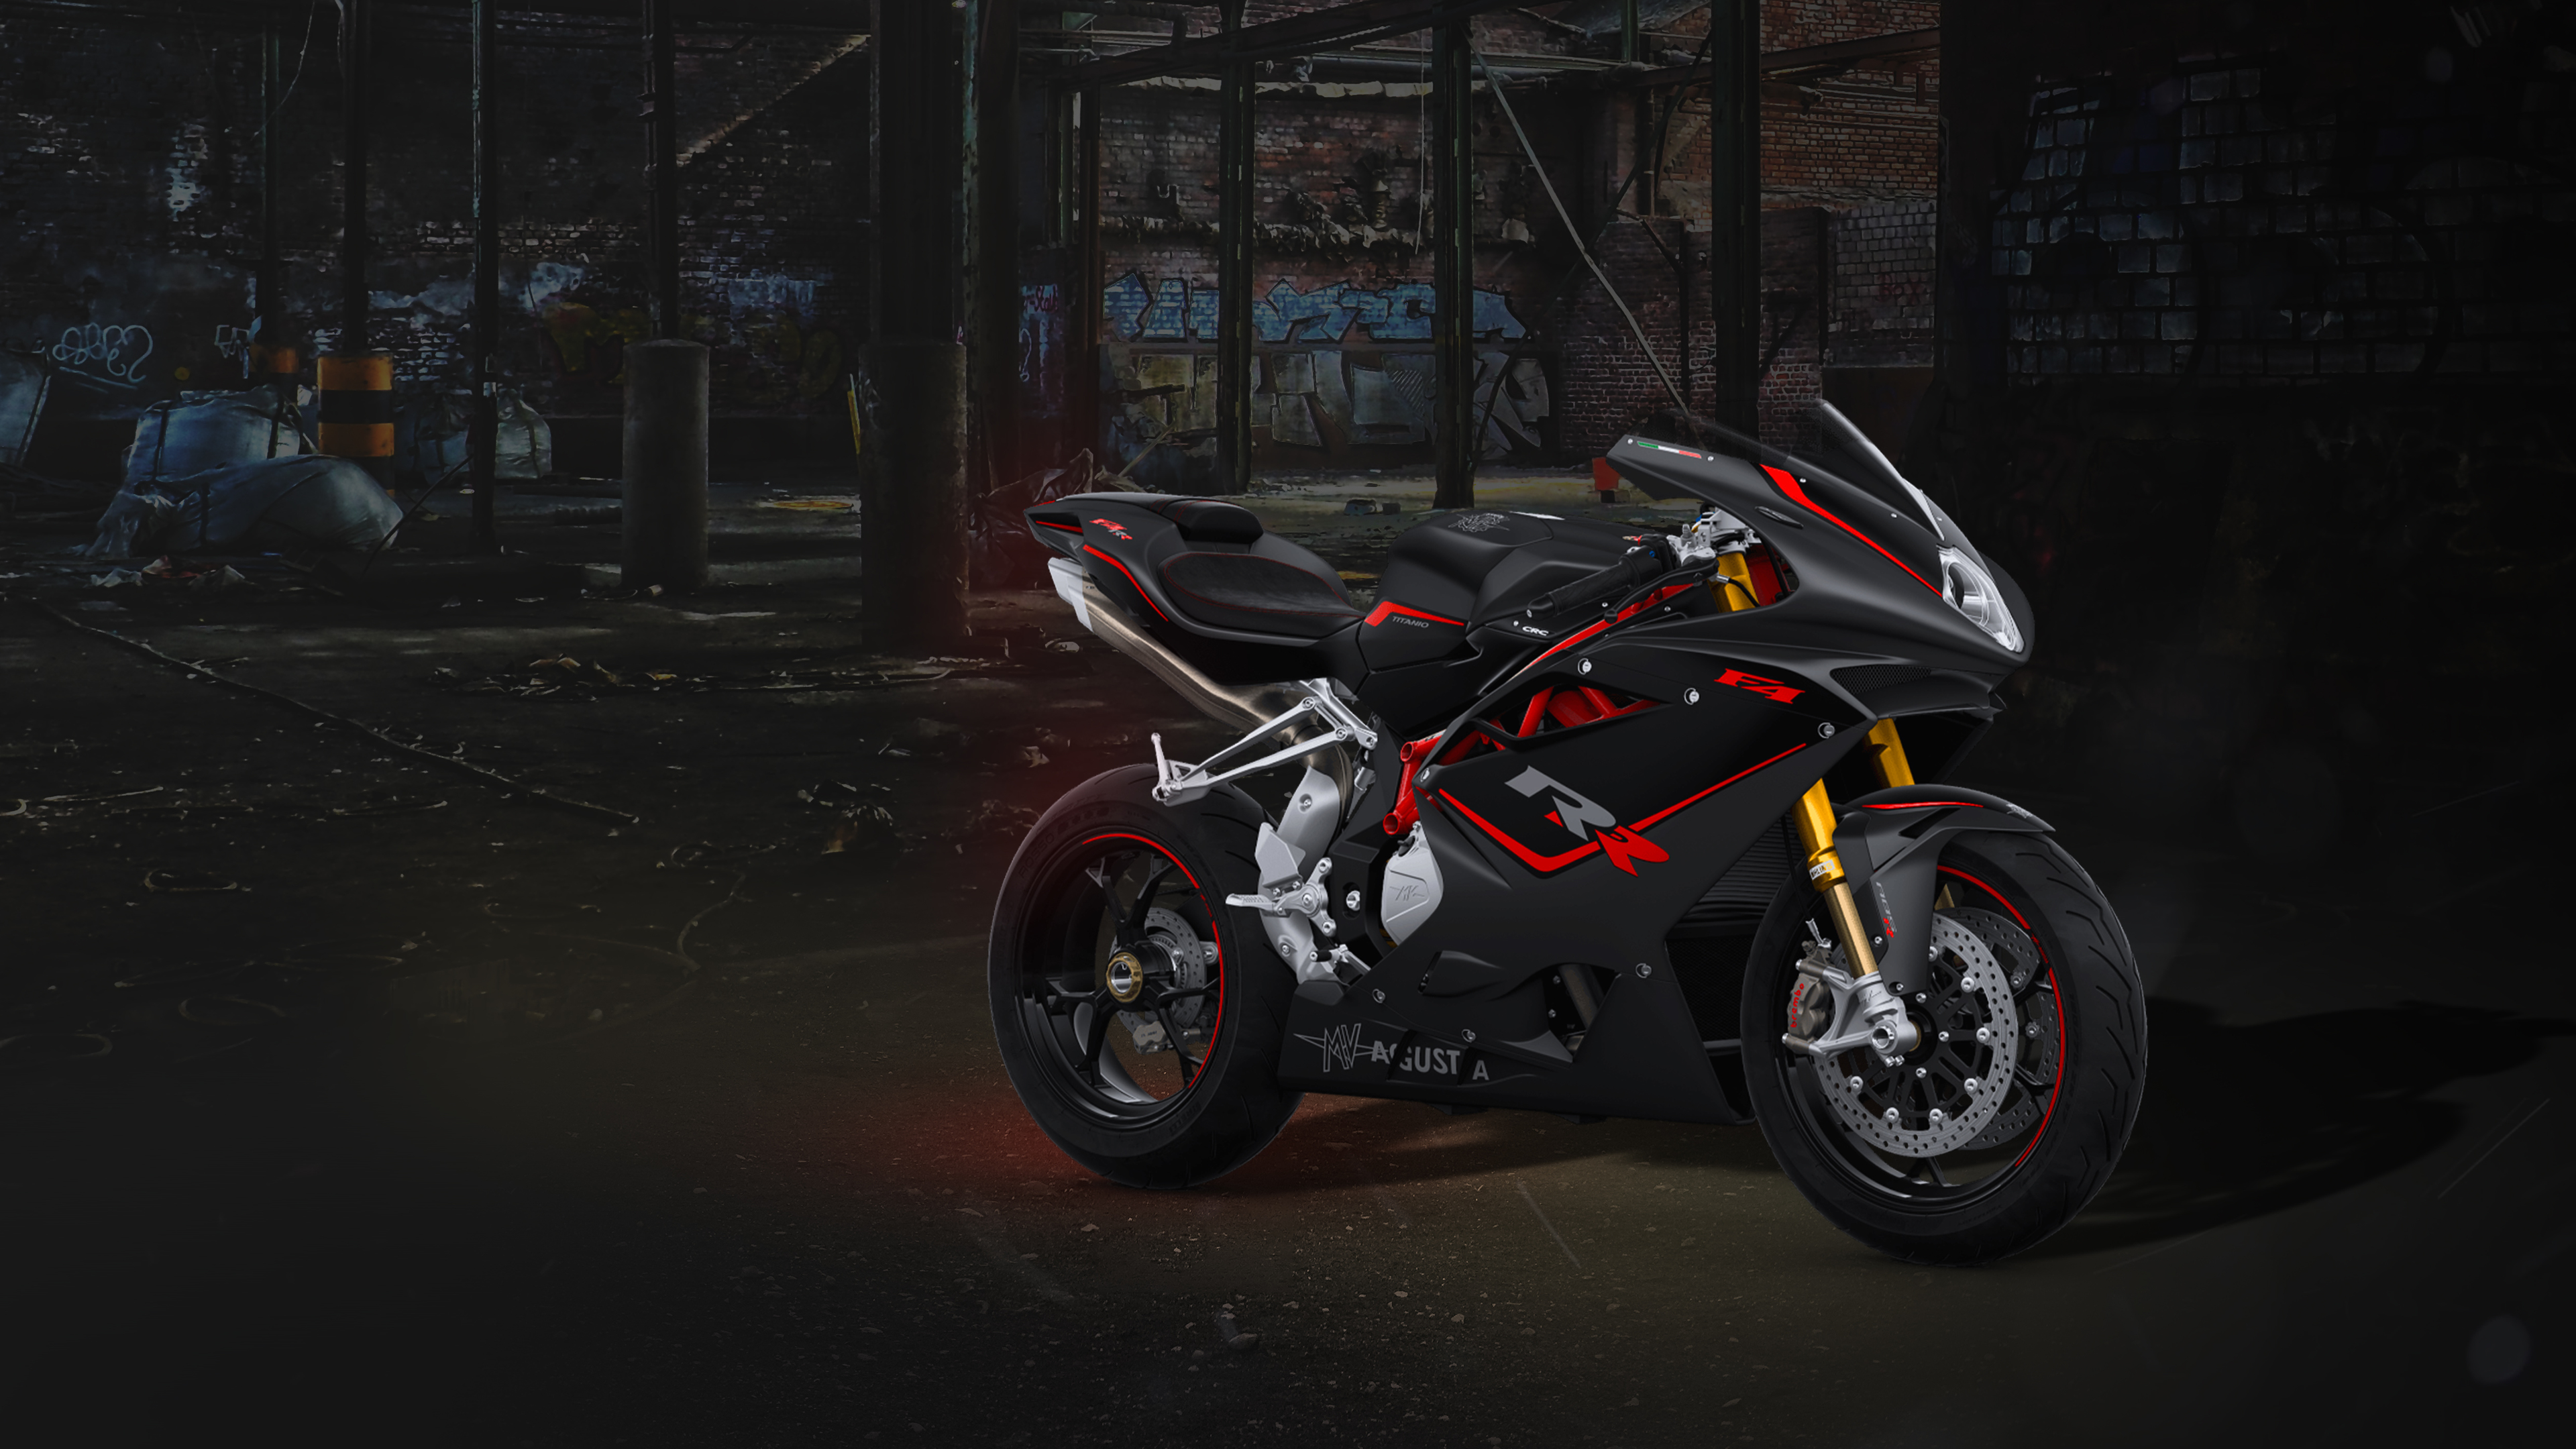 mv agusta australia rr 4k 1547320776 - MV Agusta Australia RR 4k - mv agusta wallpapers, hd-wallpapers, bikes wallpapers, 5k wallpapers, 4k-wallpapers